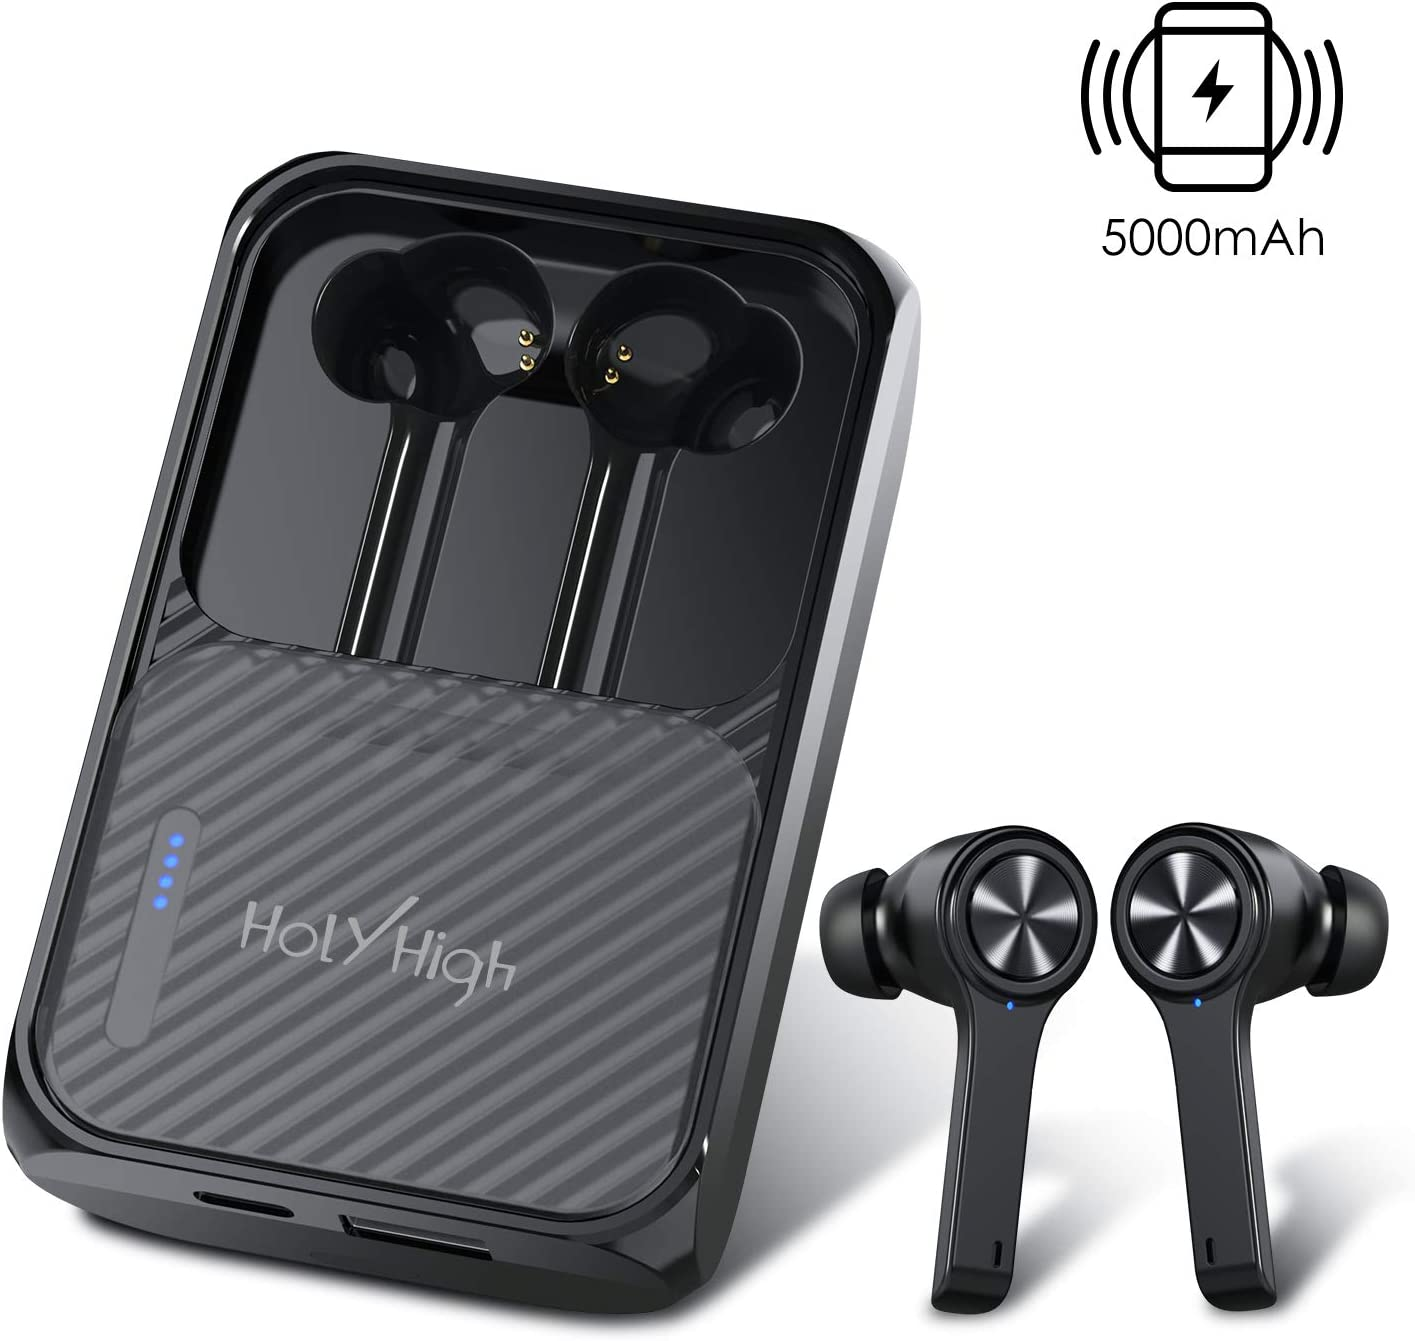 【 240H Playtime】 HolyHigh True Wireless Earbuds Bluetooth 5.0 Earphones with 5000mAh Charging Case Built-in Mic Waterproof Bluetooth Headphones with Wireless Charging Power Bank for iPhone Android